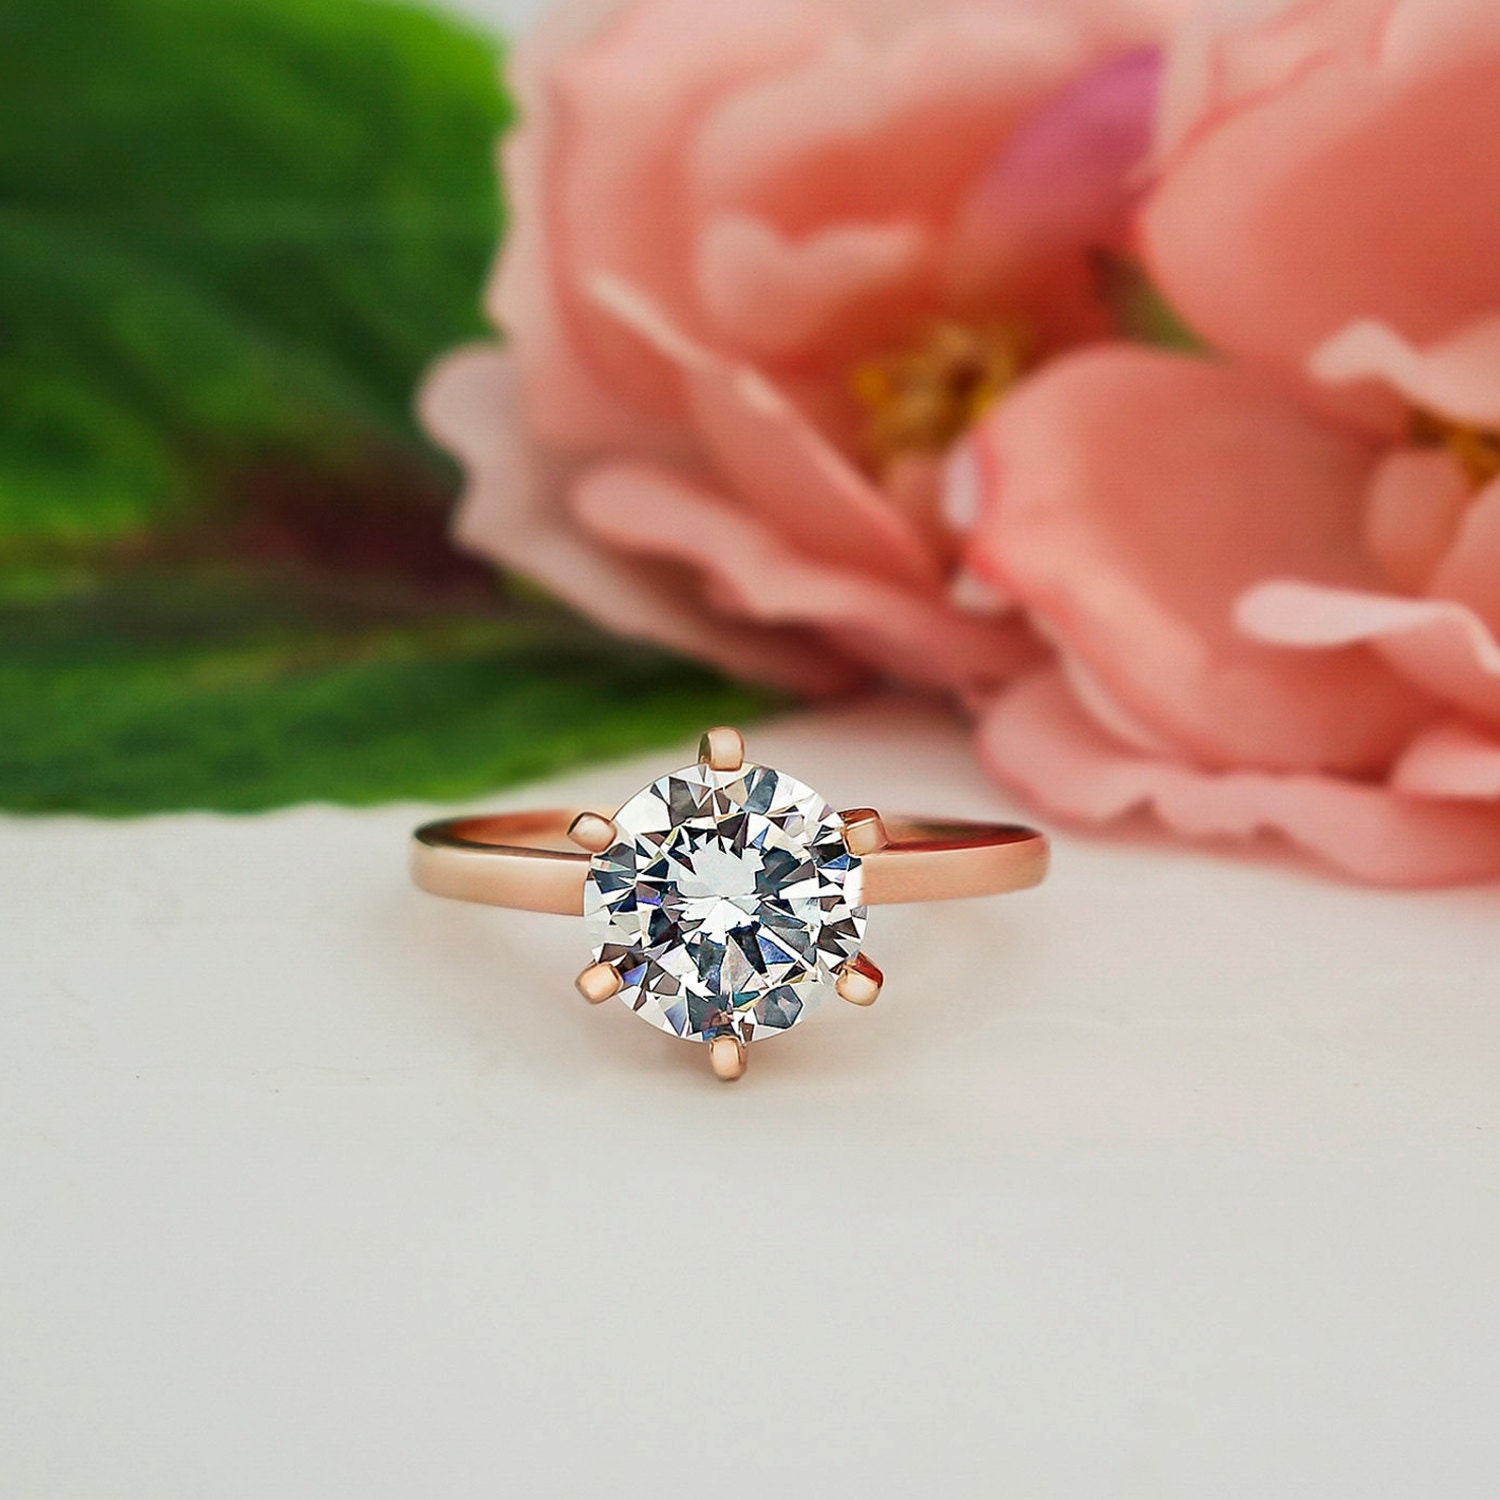 v suspended classic duquet portfolio diamond top setting solitaire rings engagement with view prong lines christopher